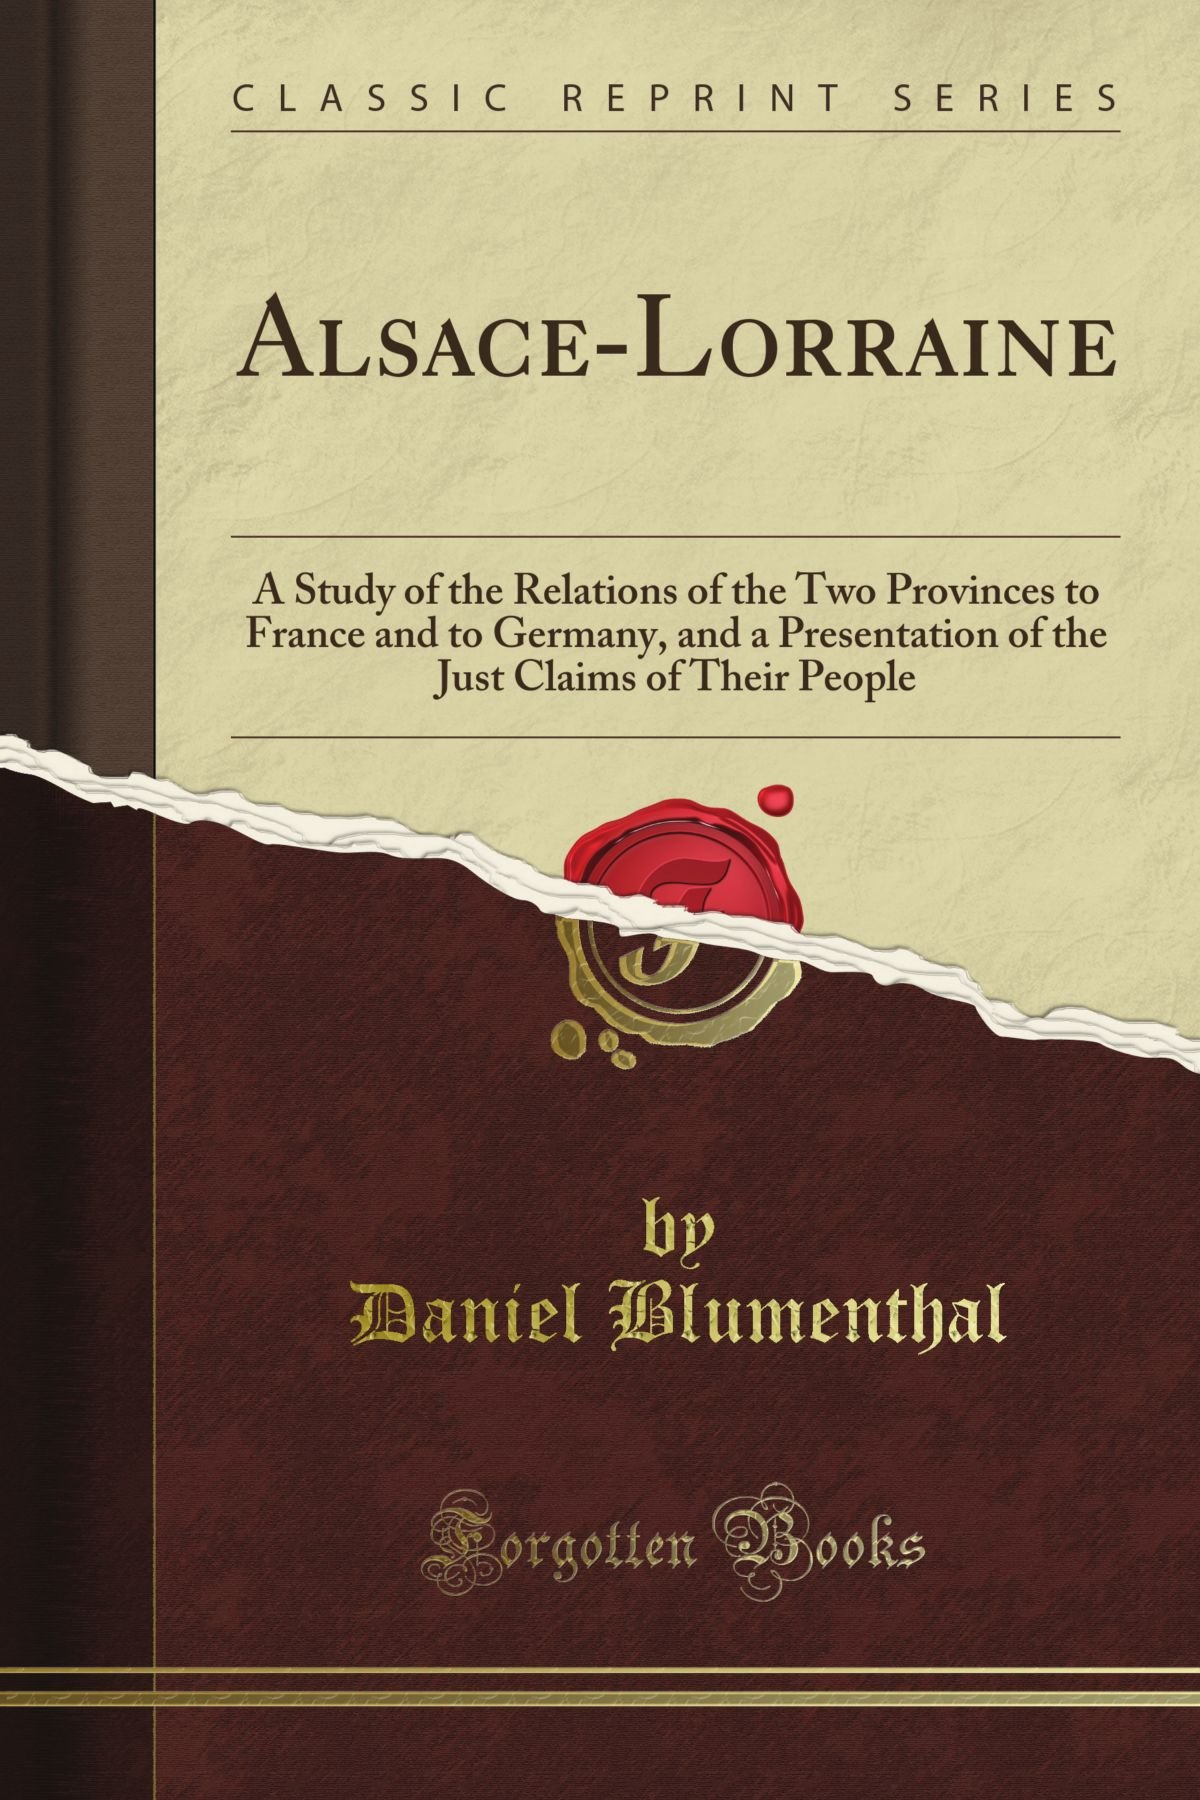 Download Alsace-Lorraine: A Study of the Relations of the Two Provinces to France and to Germany, and a Presentation of the Just Claims of Their People (Classic Reprint) ebook